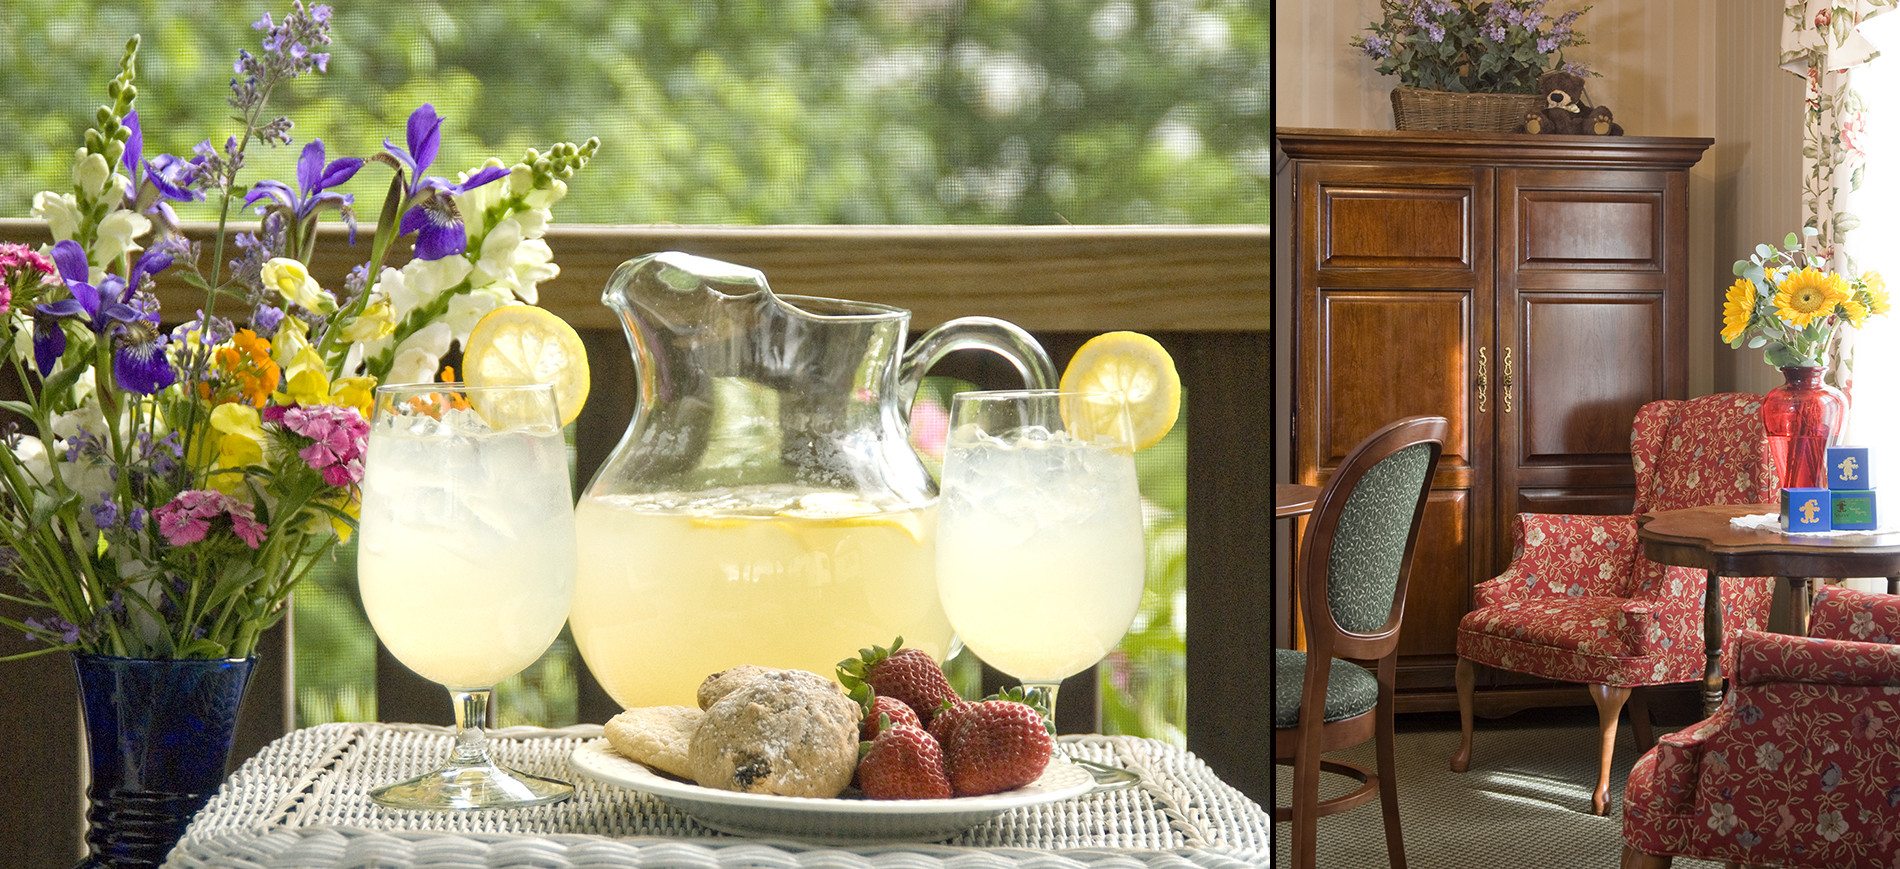 pitcher & glass of lemonade with cookies & strawberries & flowers, sitting room with red wing chair on right